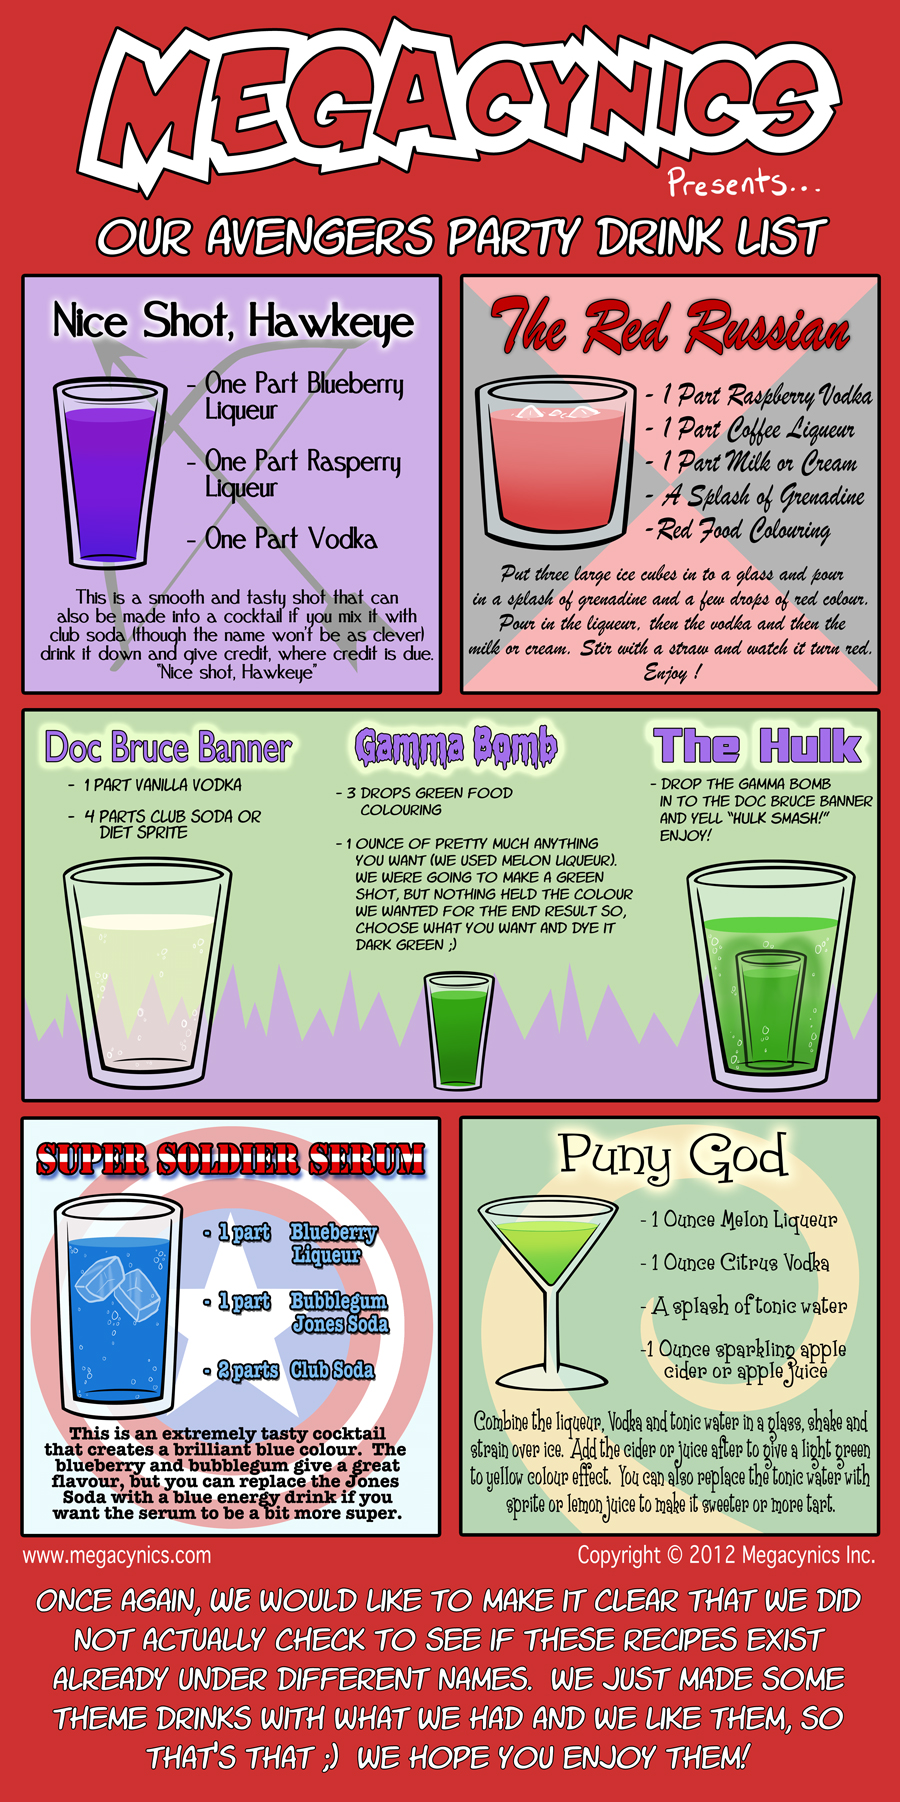 MegaCynics: Avengers Drink List (Sep 28, 2012)